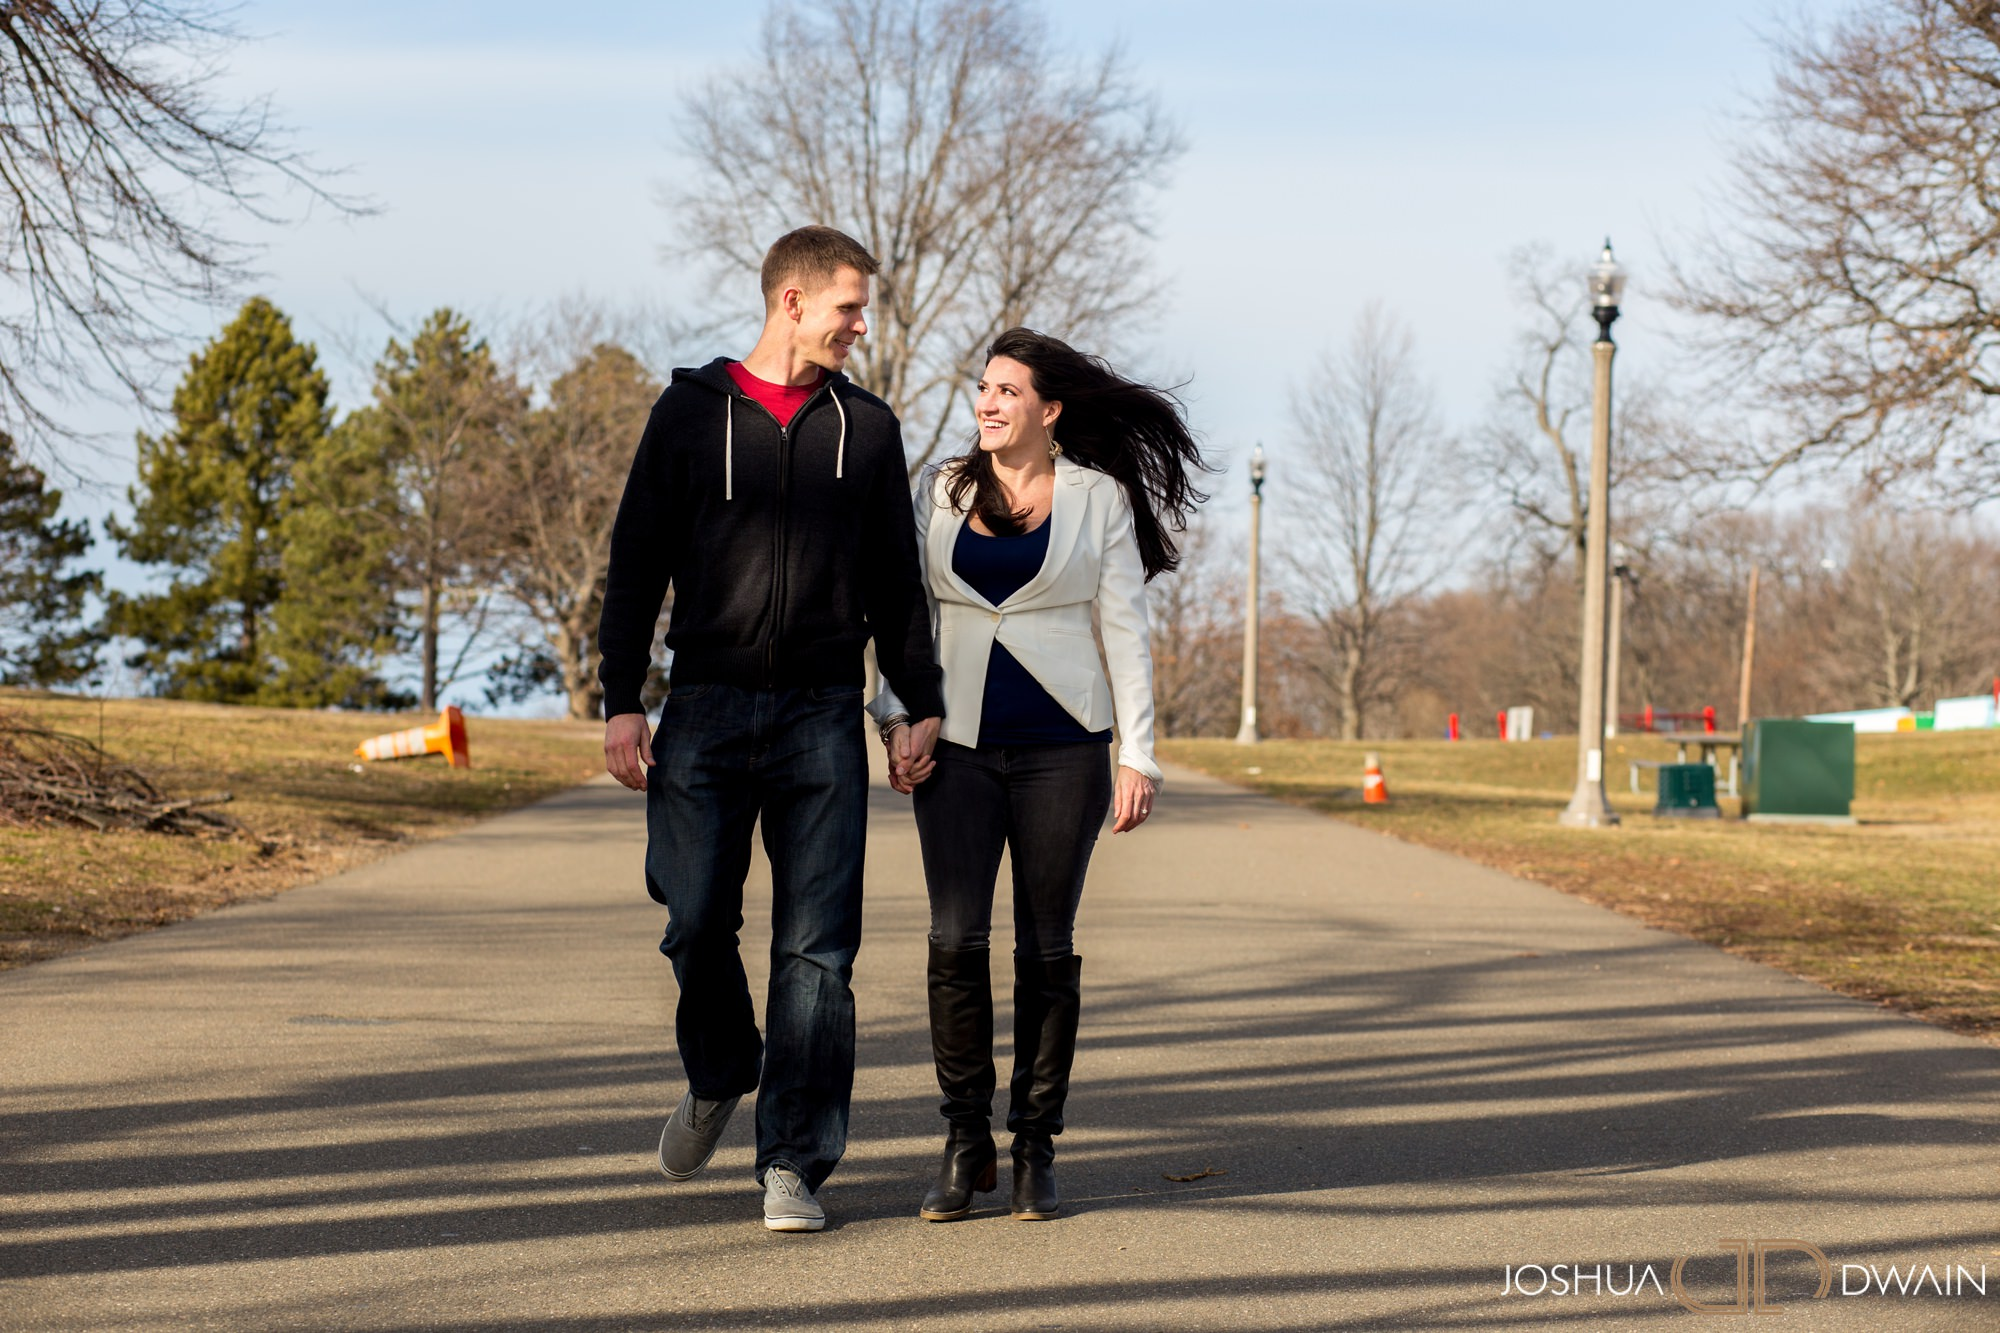 gina-michael-03-lighthouse-point-park-engagement-photos-matthew-ellis-joshua-dwain